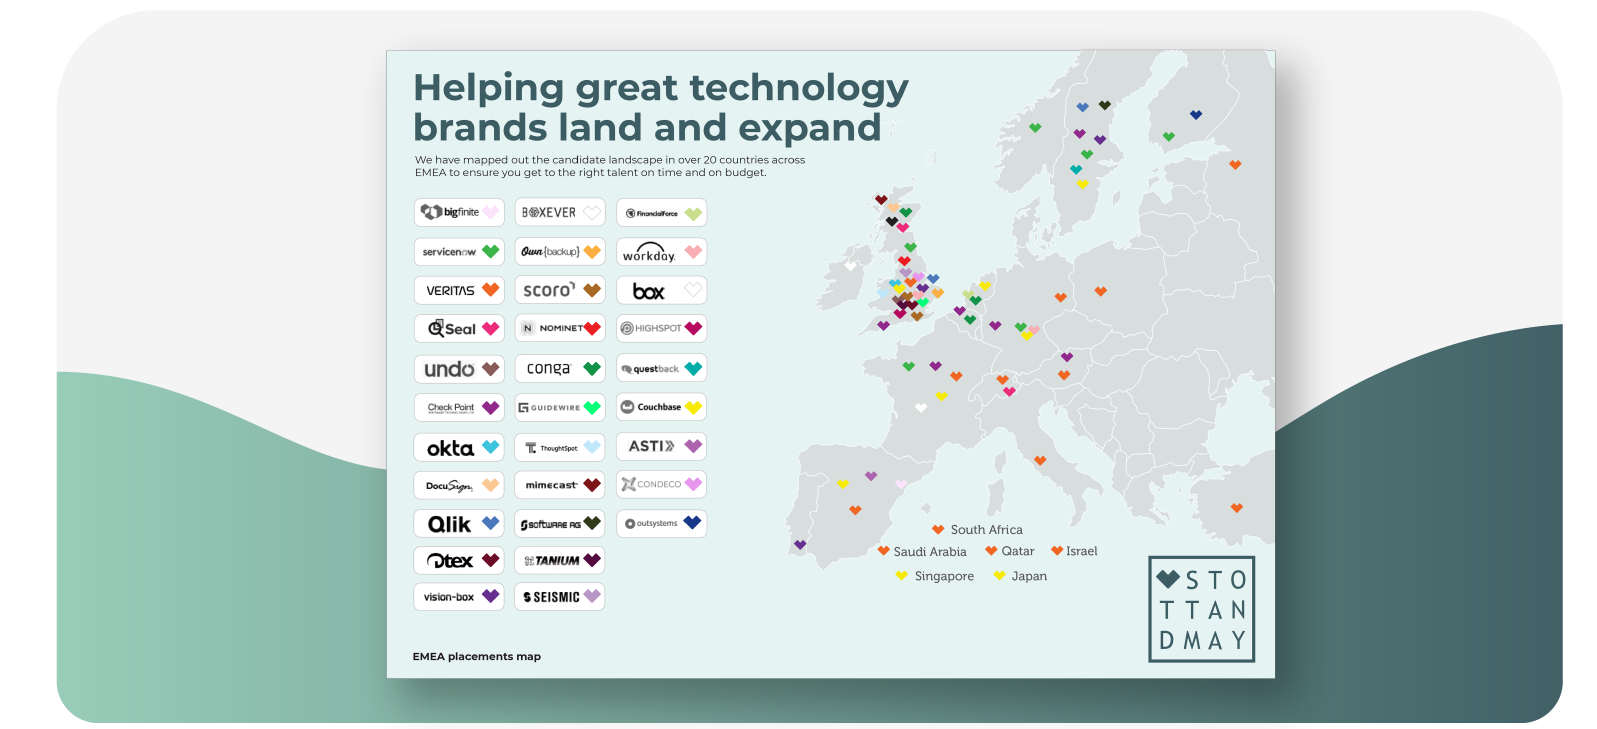 Stott and May EMEA Tech Sales Placements Map